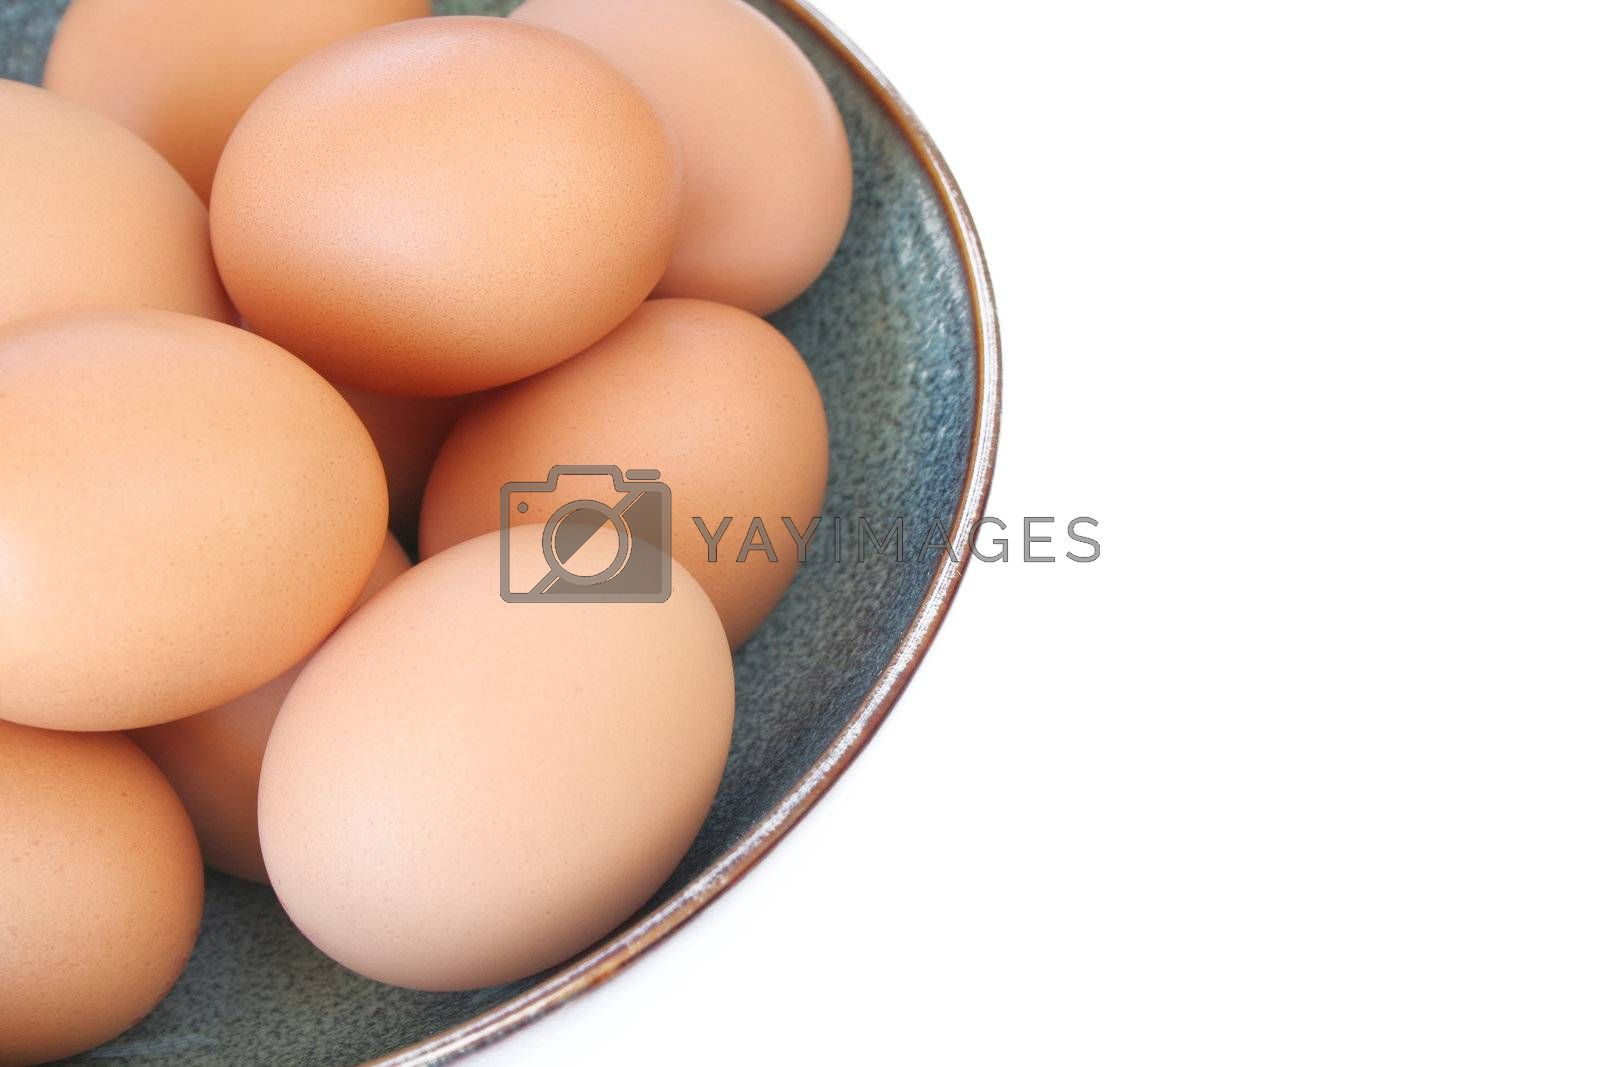 Bowl of organic eggs isolated on a white background with room for copy space.